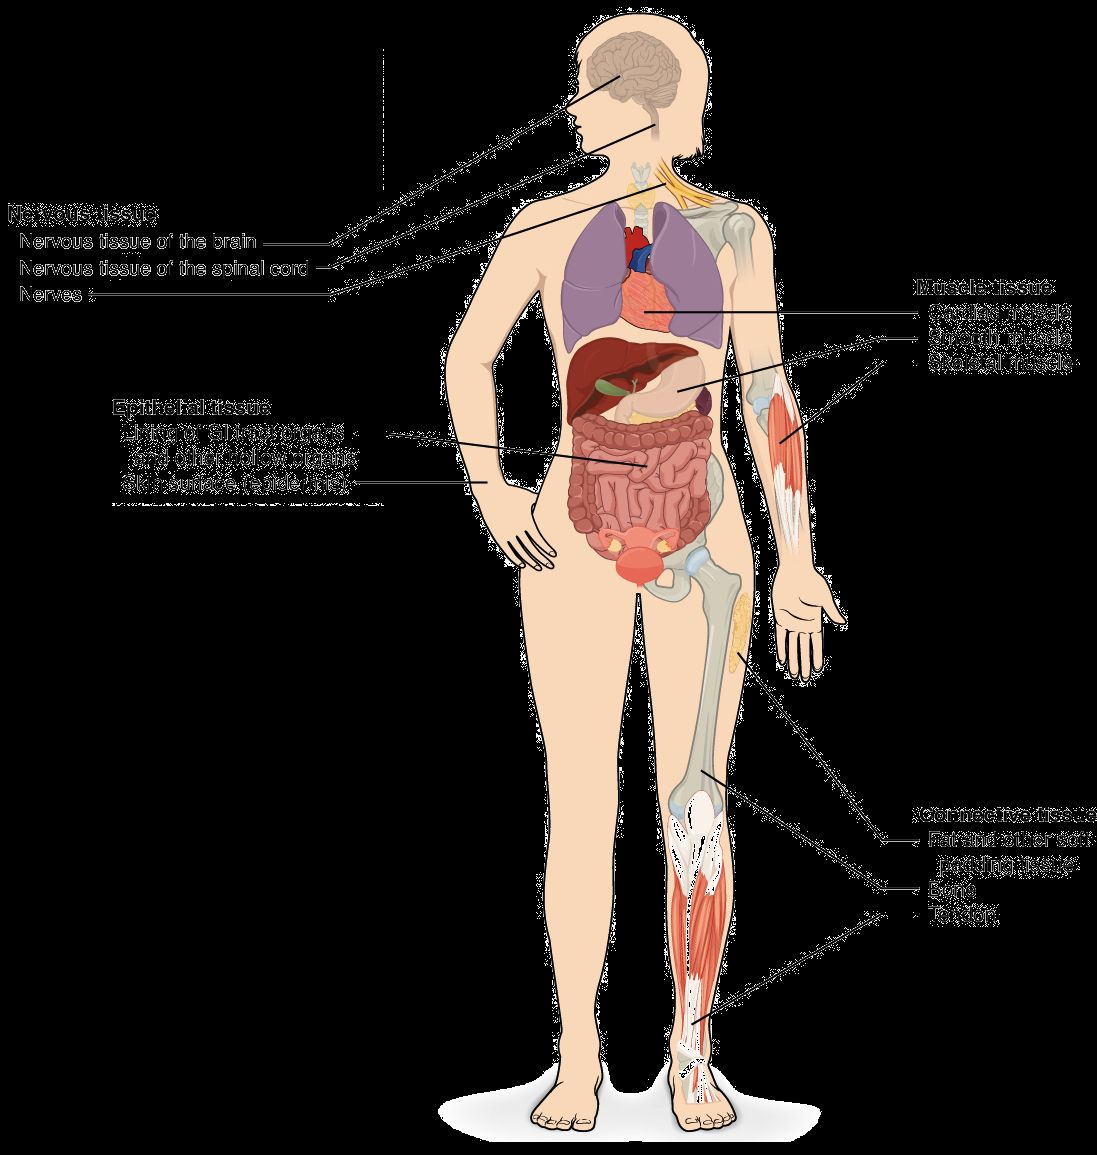 Pictures Of Organs In Body Human Anatomy Drawing Pinterest